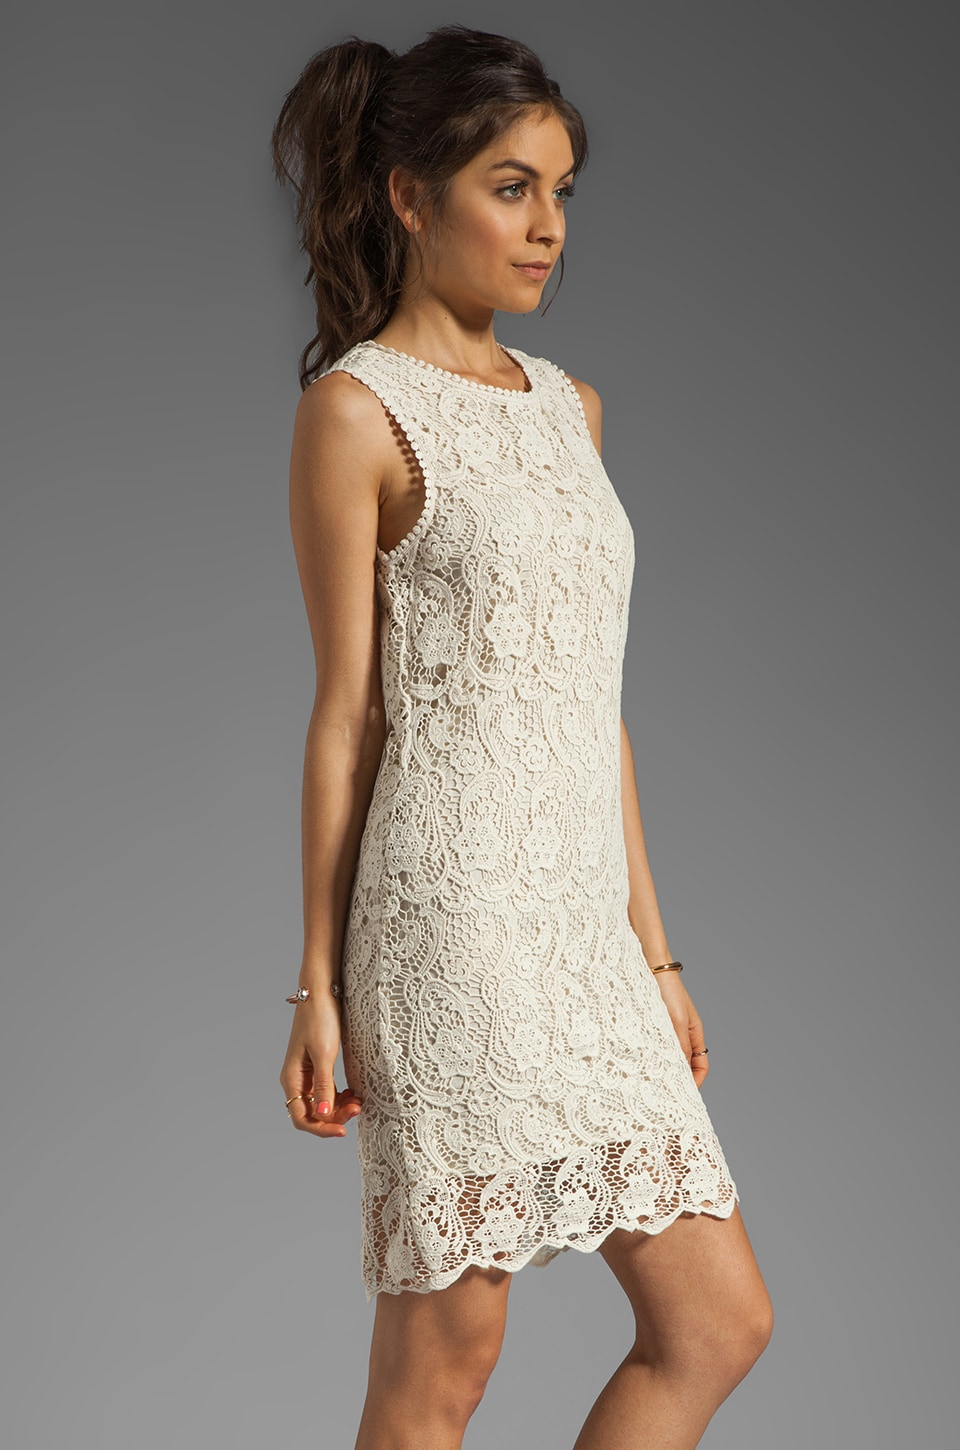 Joie Vionne Crochet Lace Dress in Off White | REVOLVE